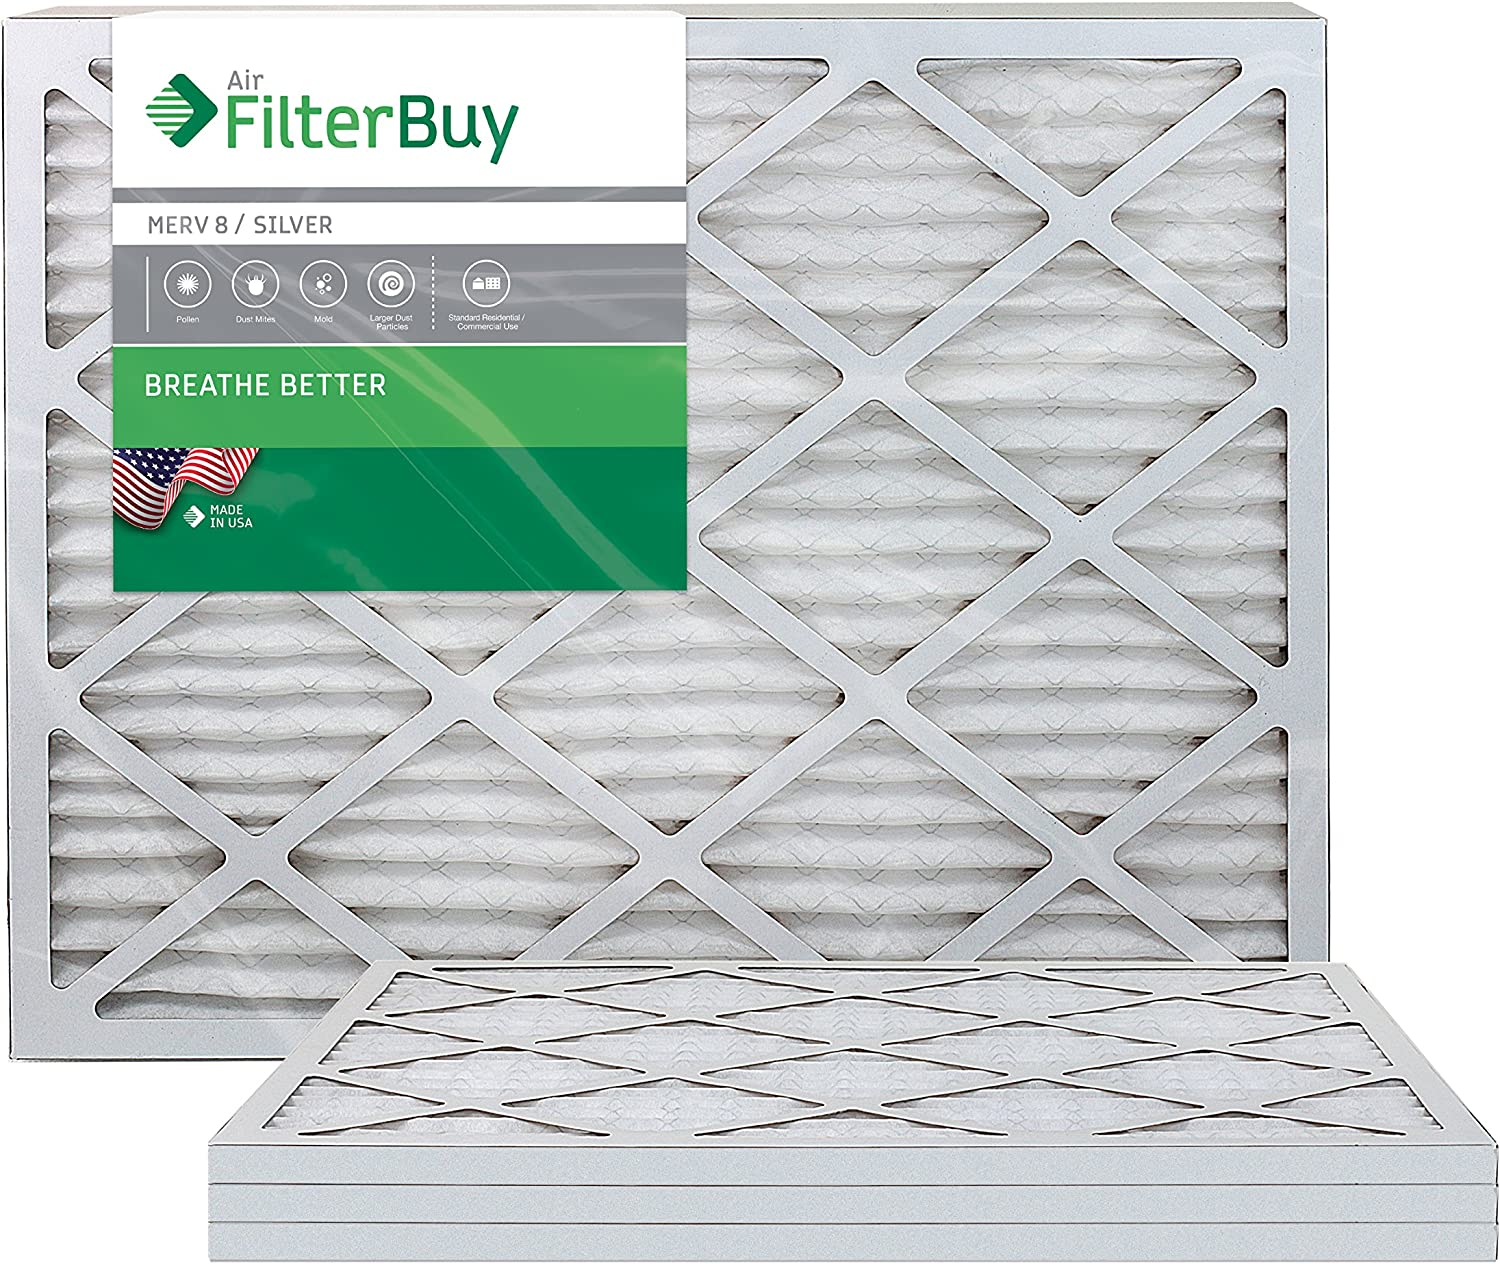 FilterBuy 14x36x1 MERV 8 Pleated AC Furnace Air Filter, (Pack of 4 Filters), 14x36x1 – Silver